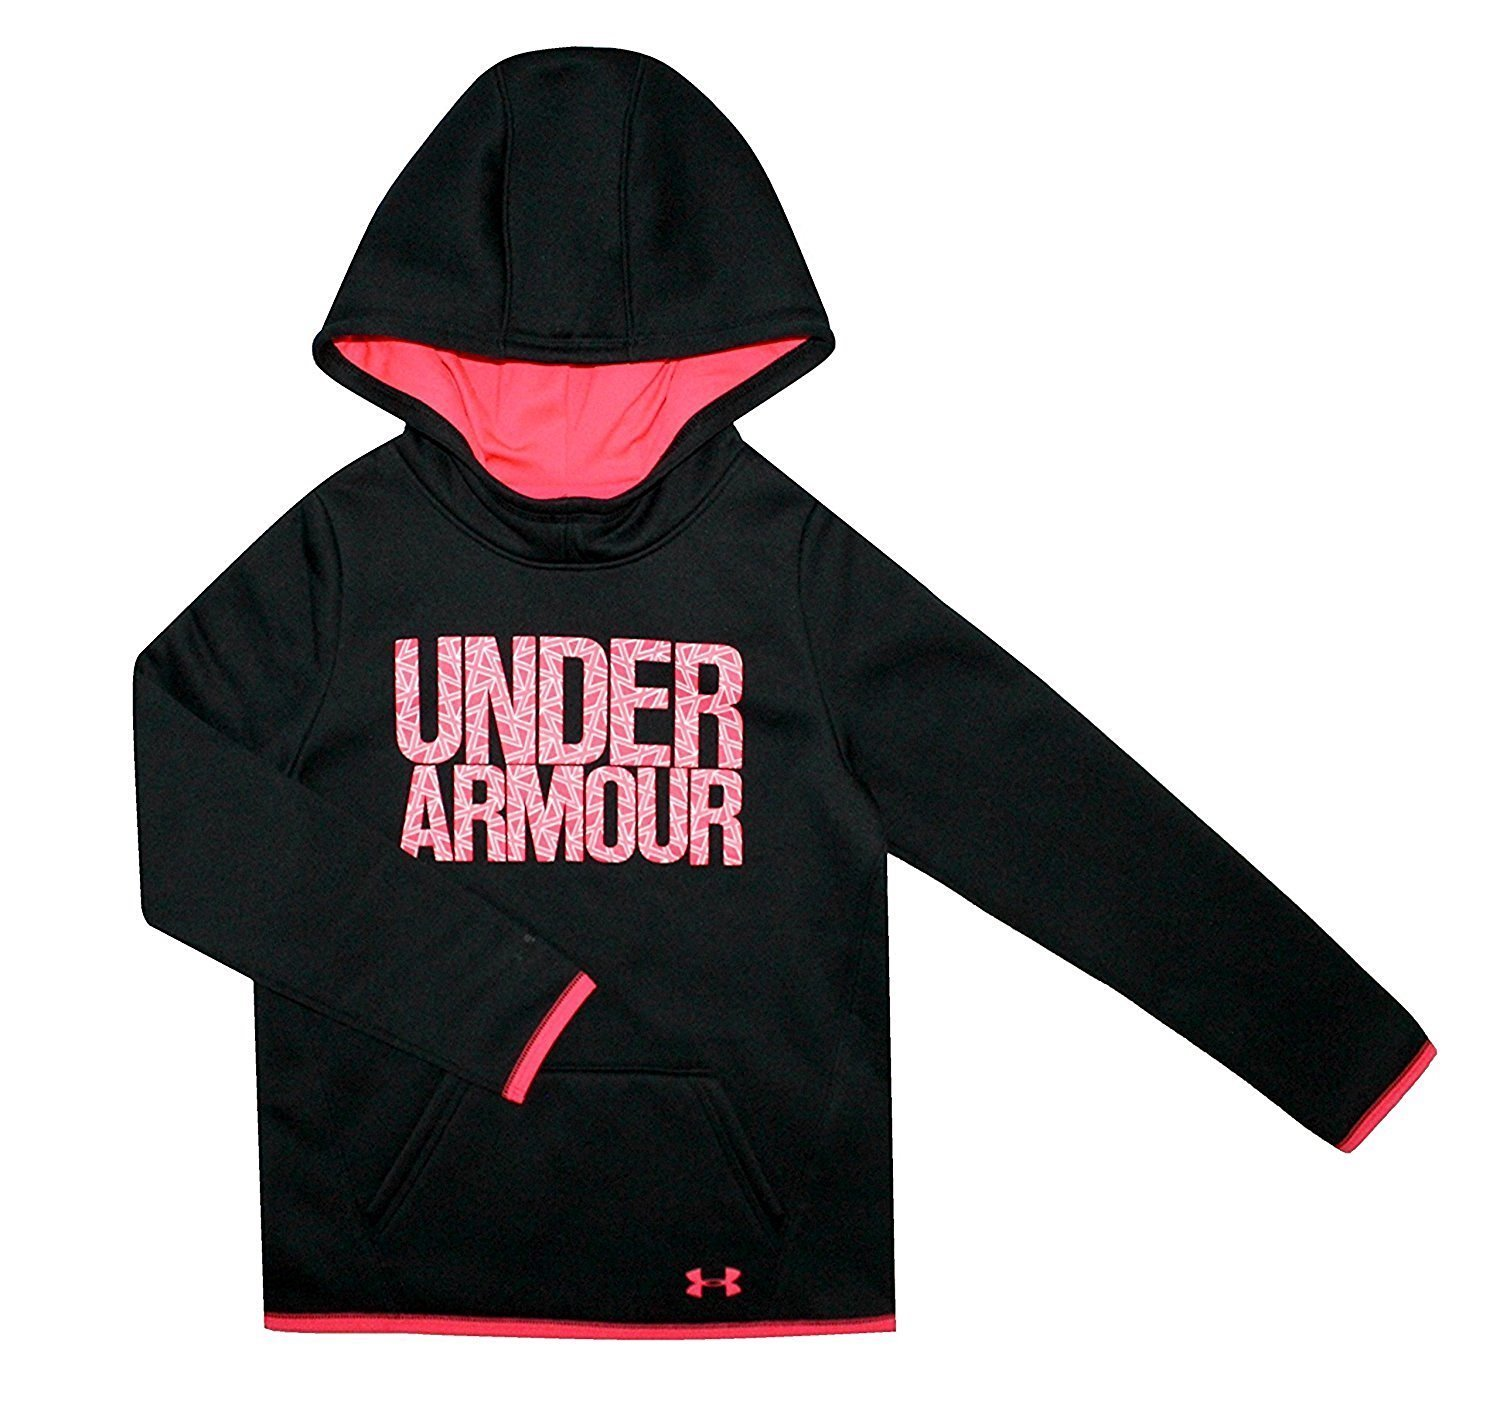 Under Armour Big Girls Youth Athletic Storm Fleece Hoodie Water Resistant X-Small